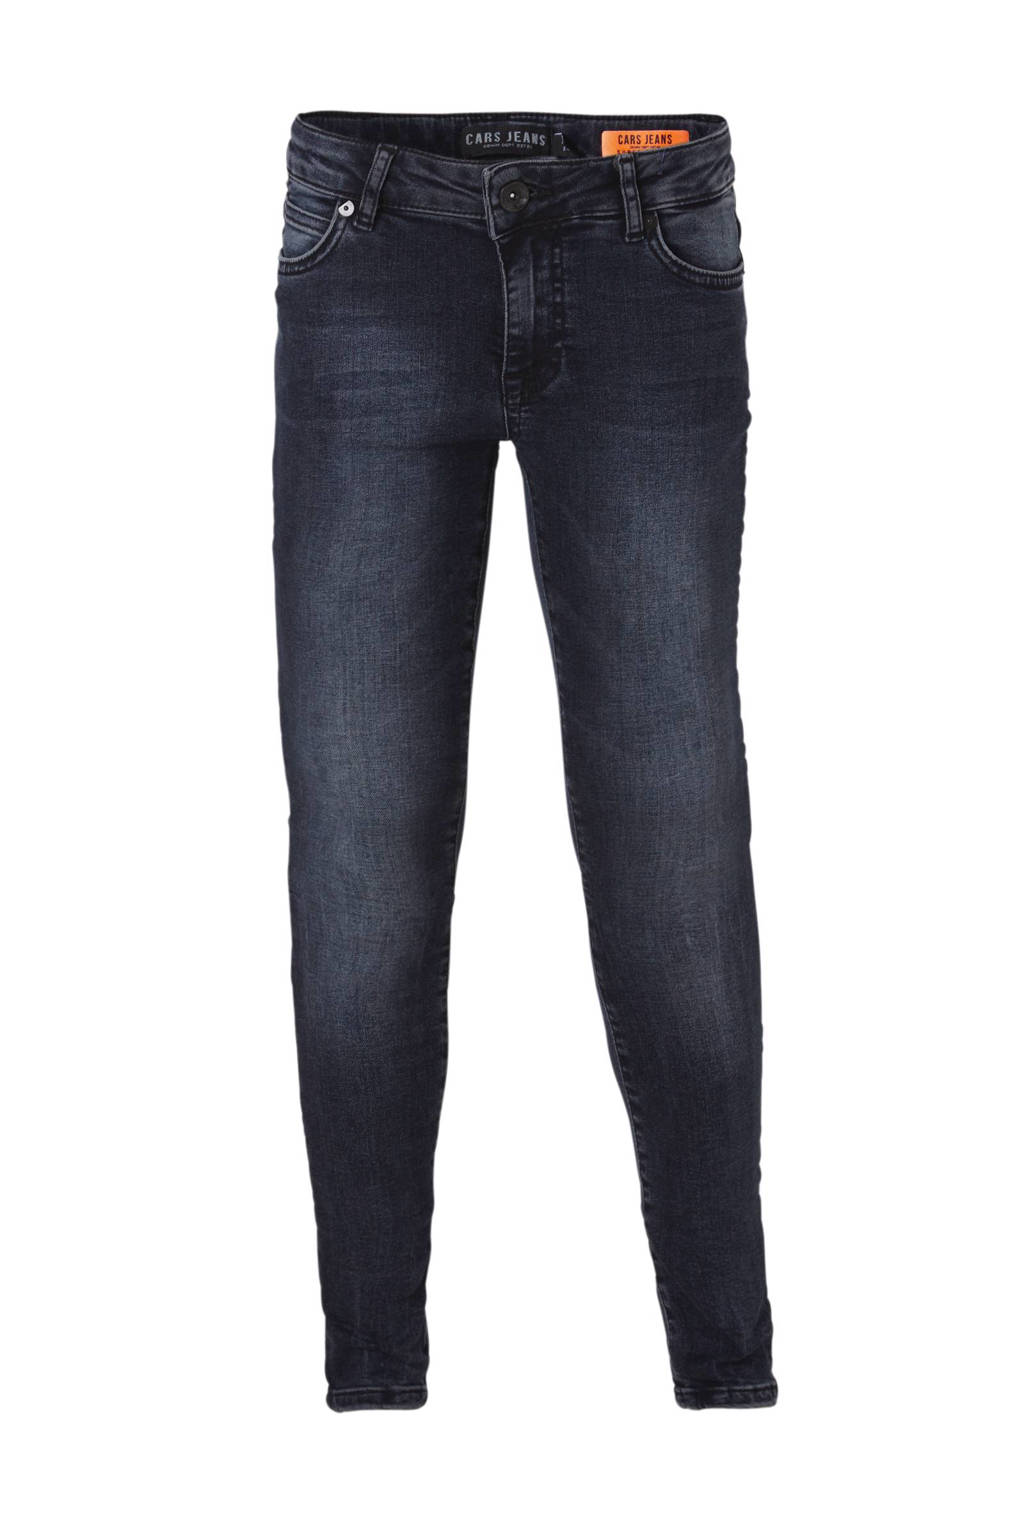 Cars skinny jeans Trust donkerblauw, Donkerblauw